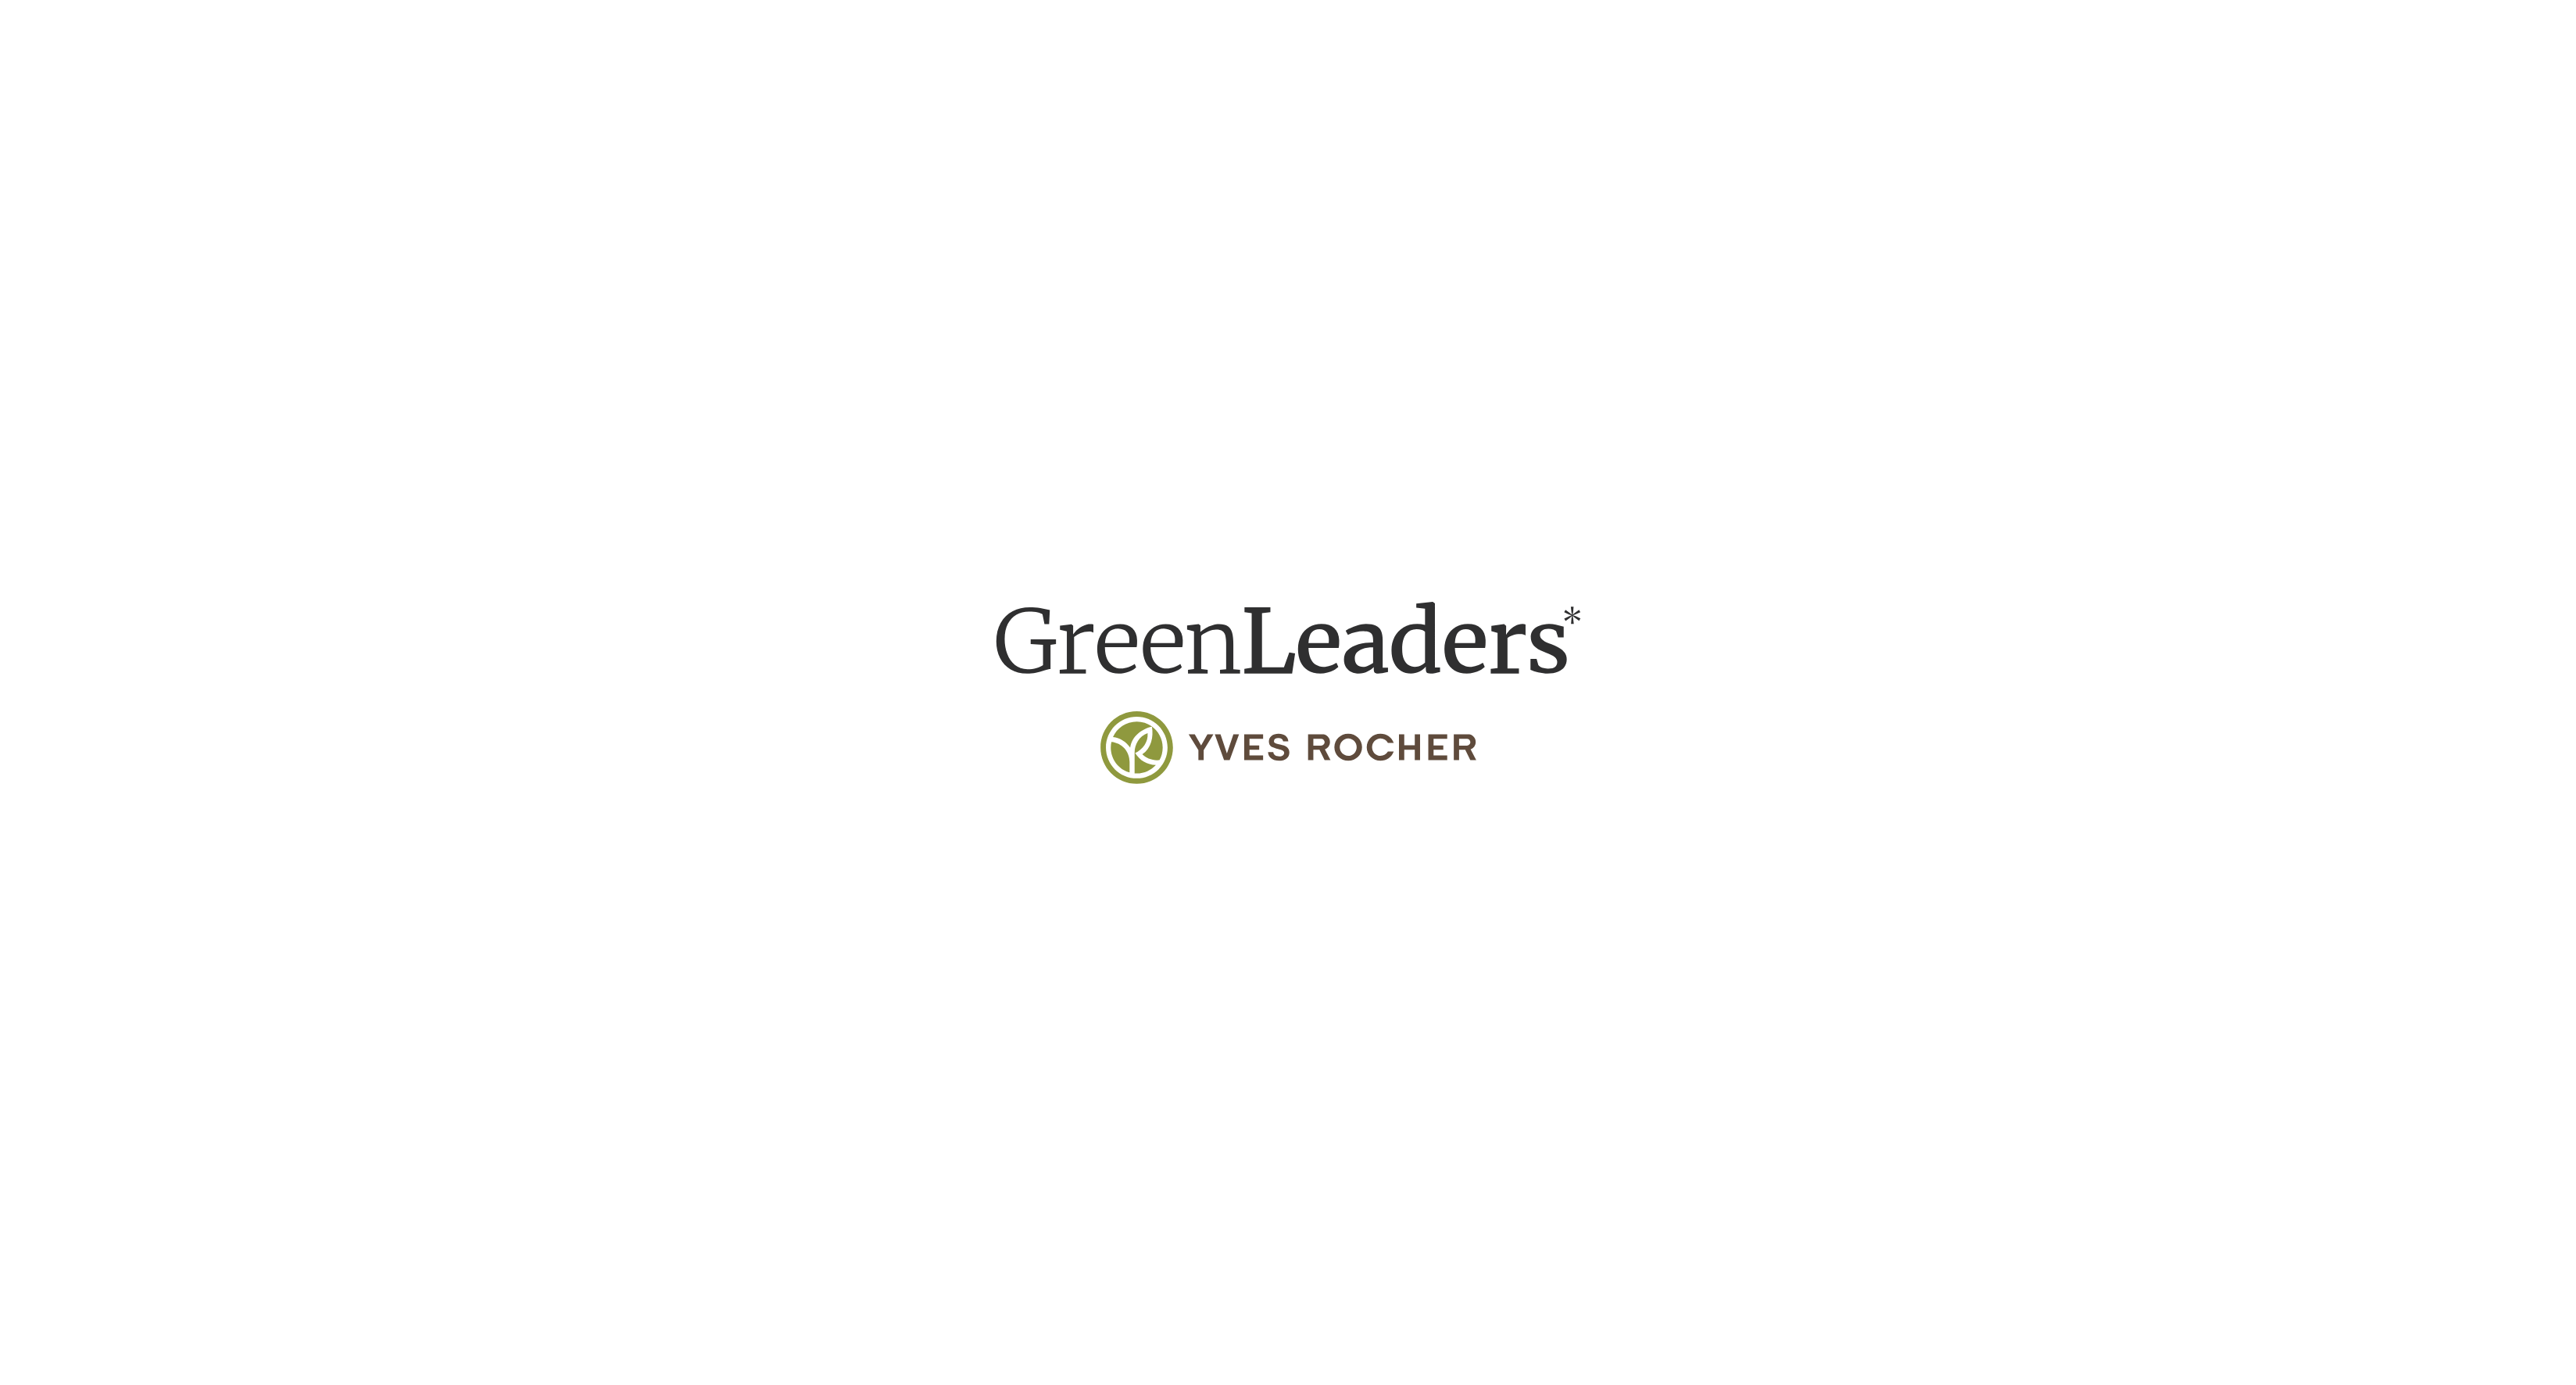 Proposition de logo pour Green Leaders